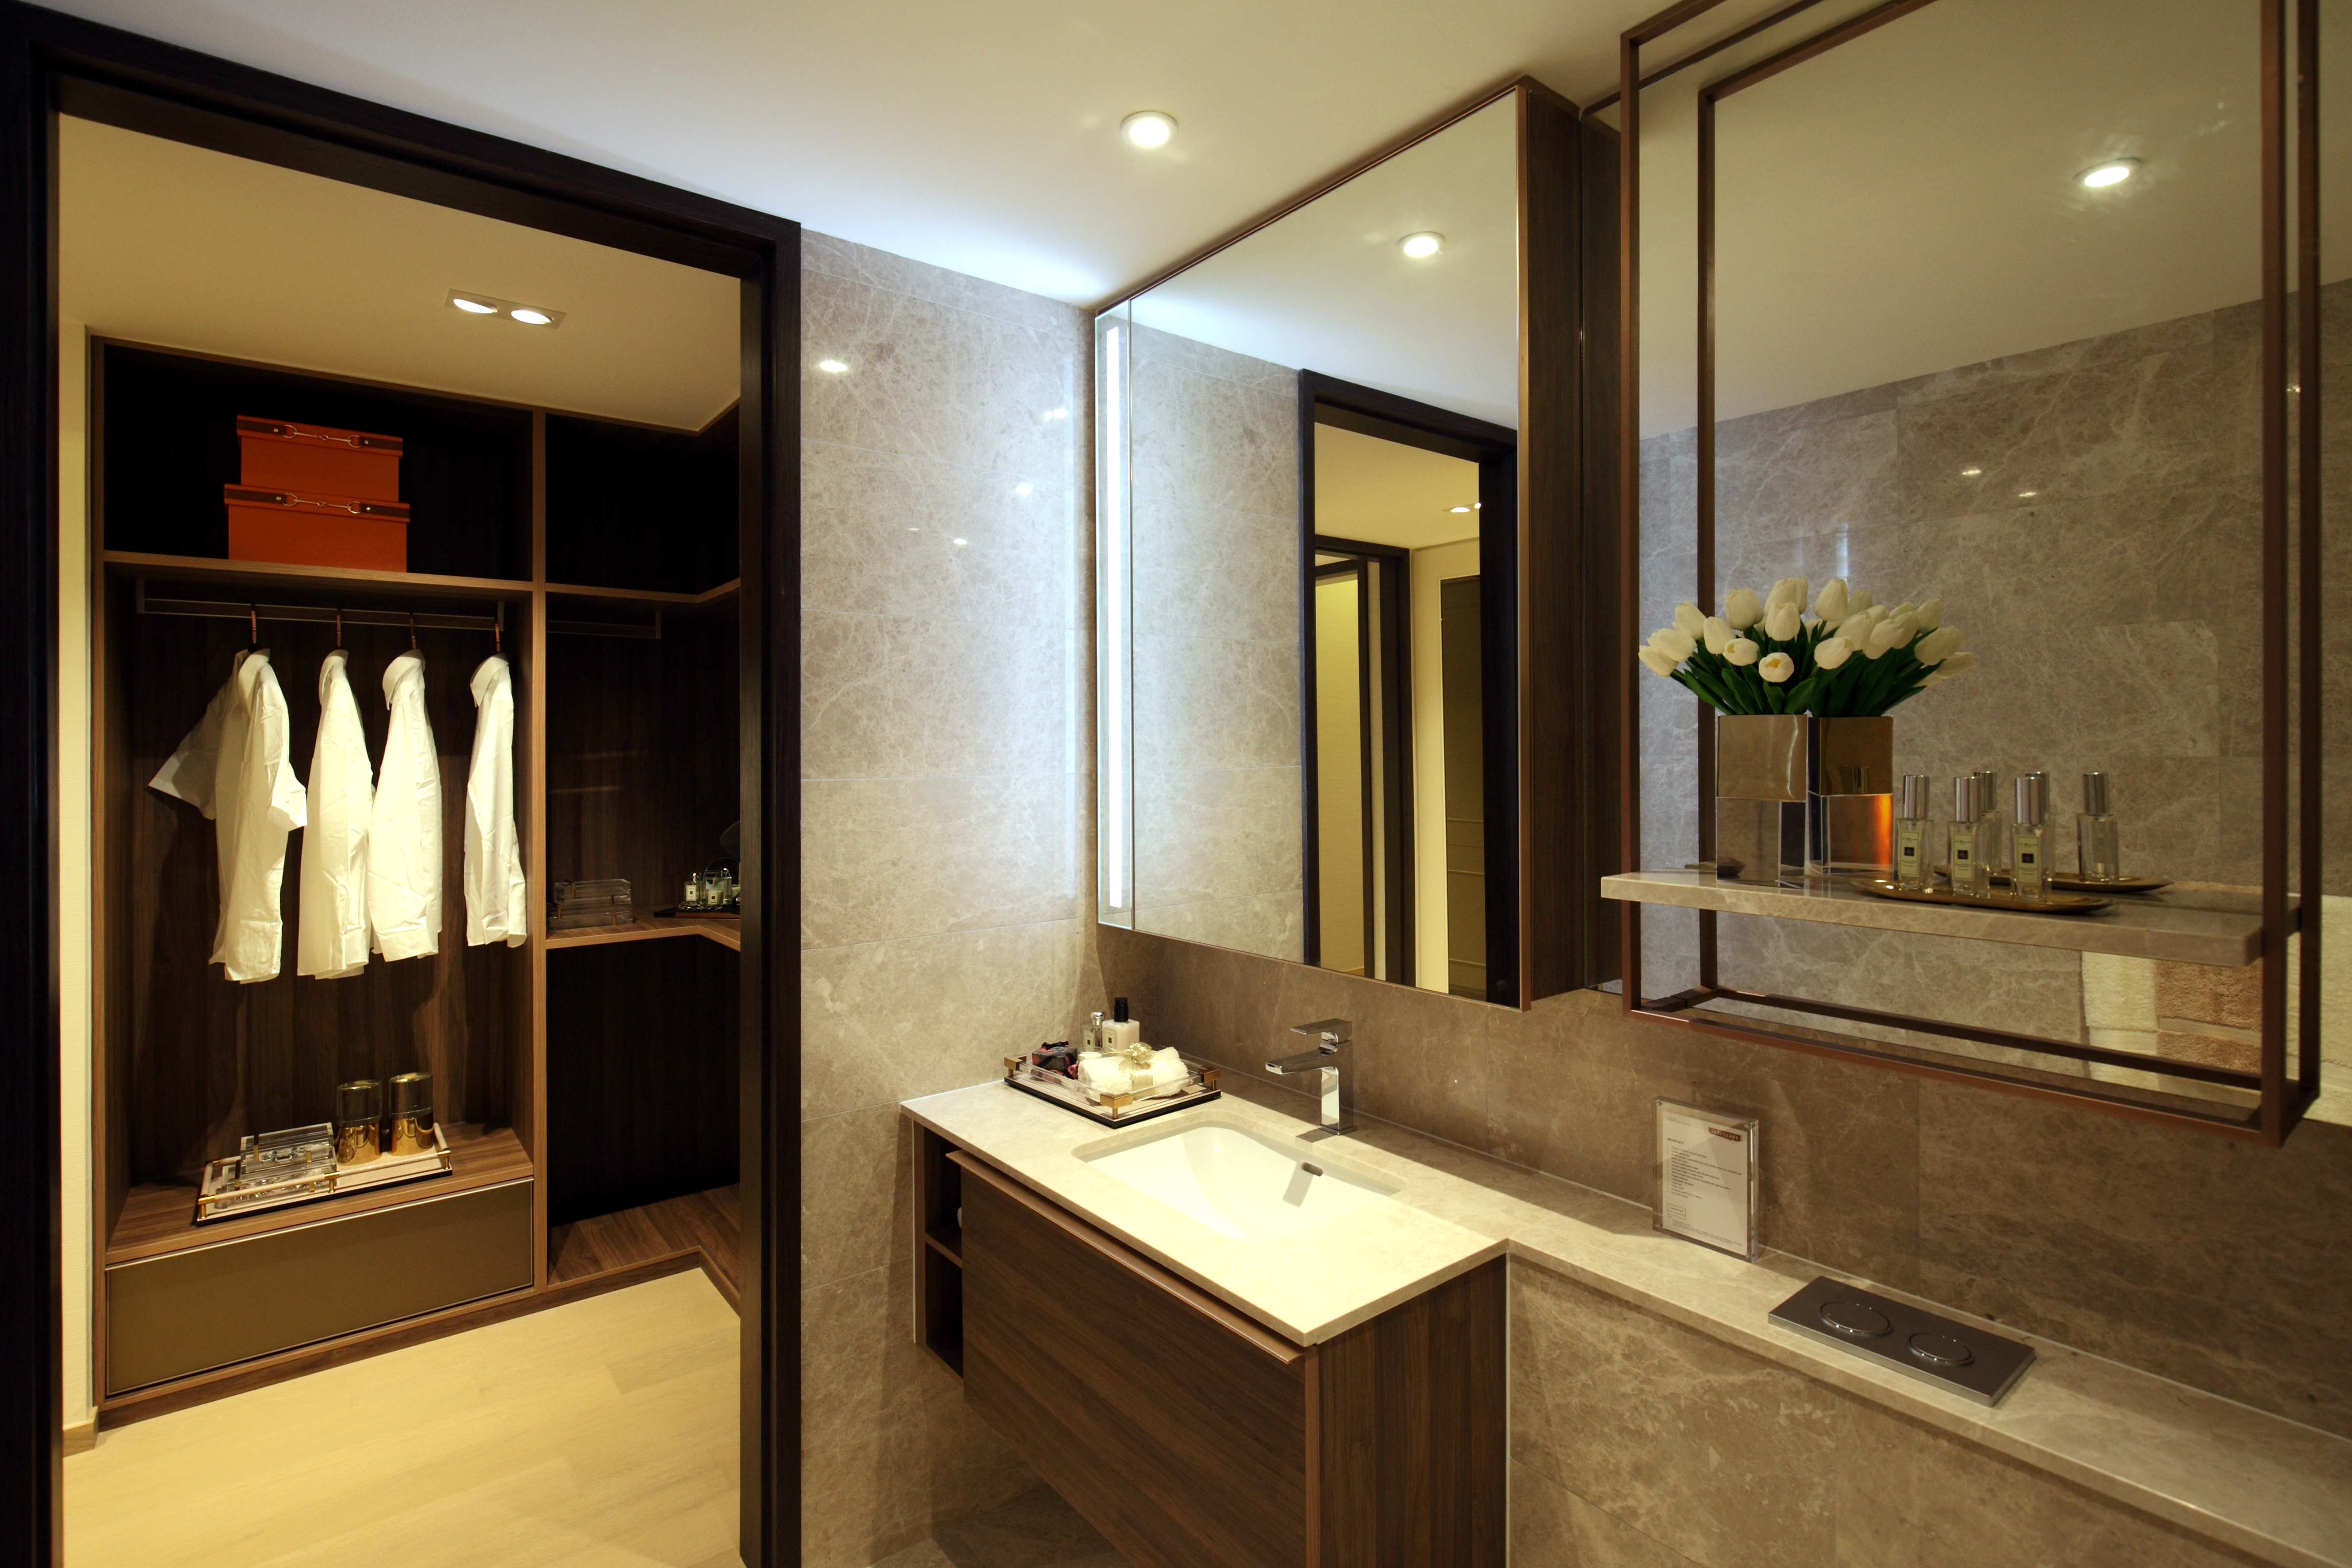 The master bedroom of selected premium units come with en suite bathroom and walk-in wardrobe - EDGEPROP SINGAPORE